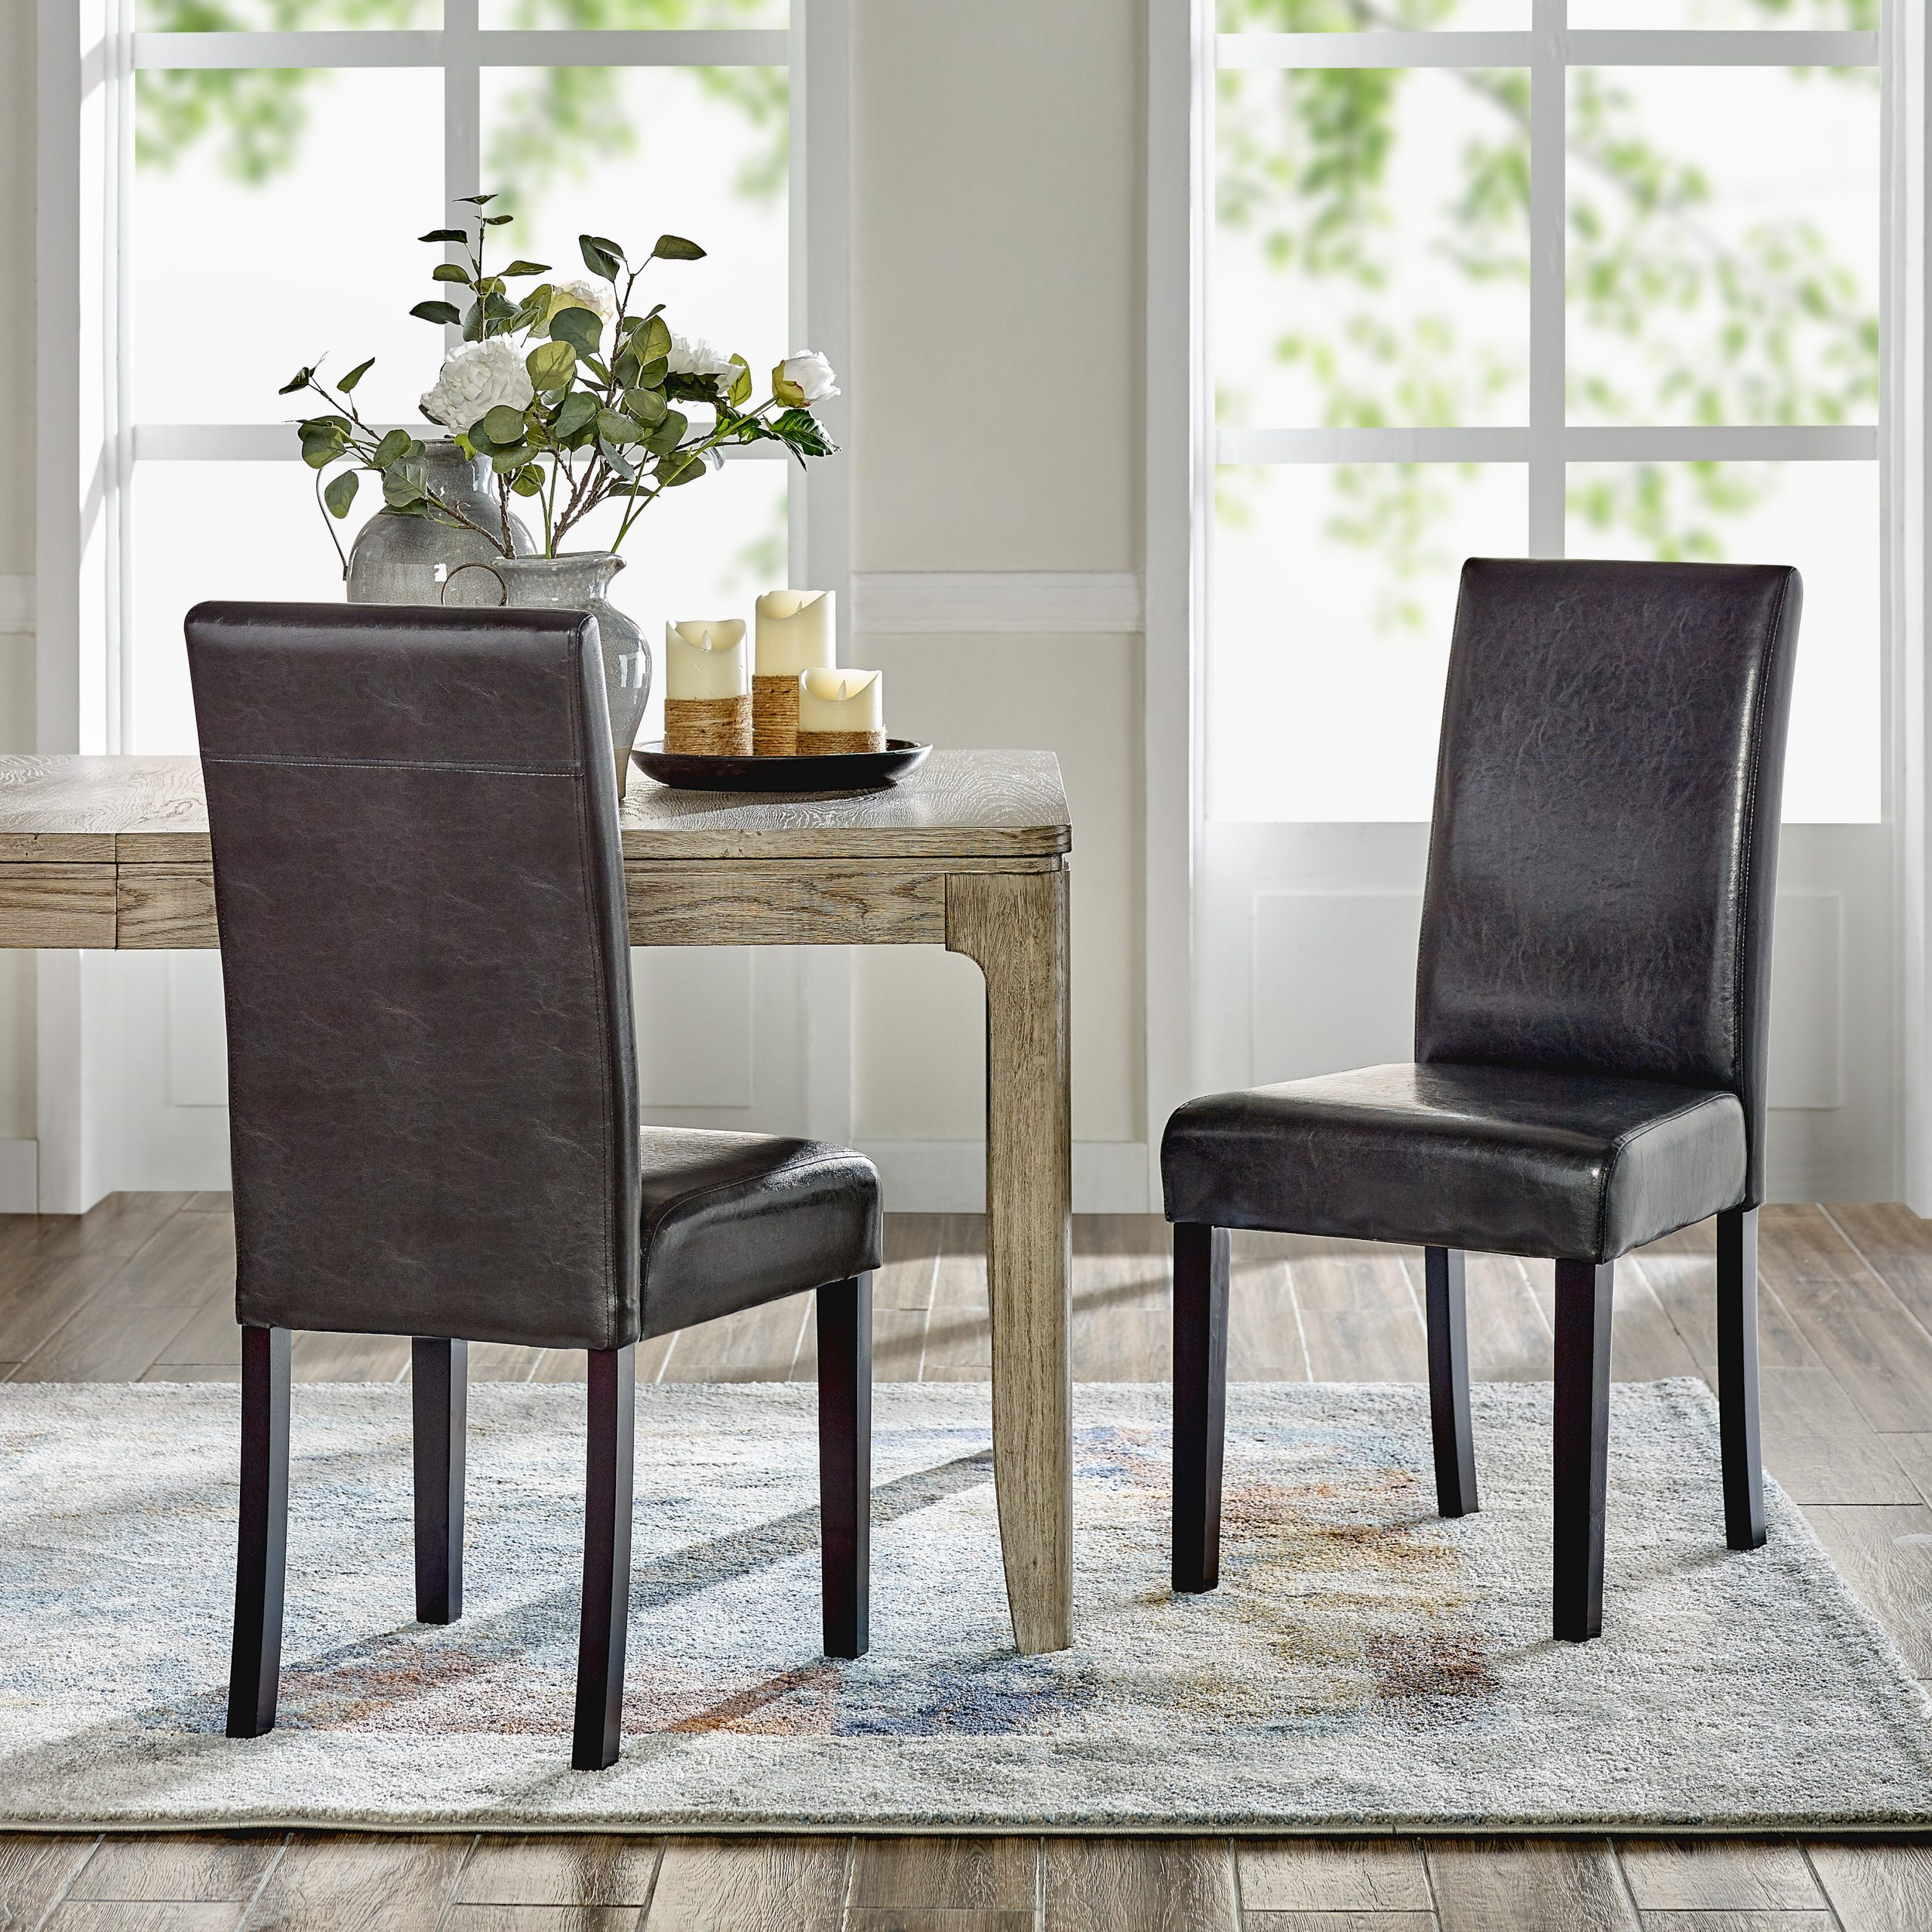 Kitchen & Dining Chairs You'Ll Love In 2021 | Wayfair Pertaining To Madison Avenue Tufted Cotton Upholstered Dining Chairs (Set Of 2) (View 13 of 15)